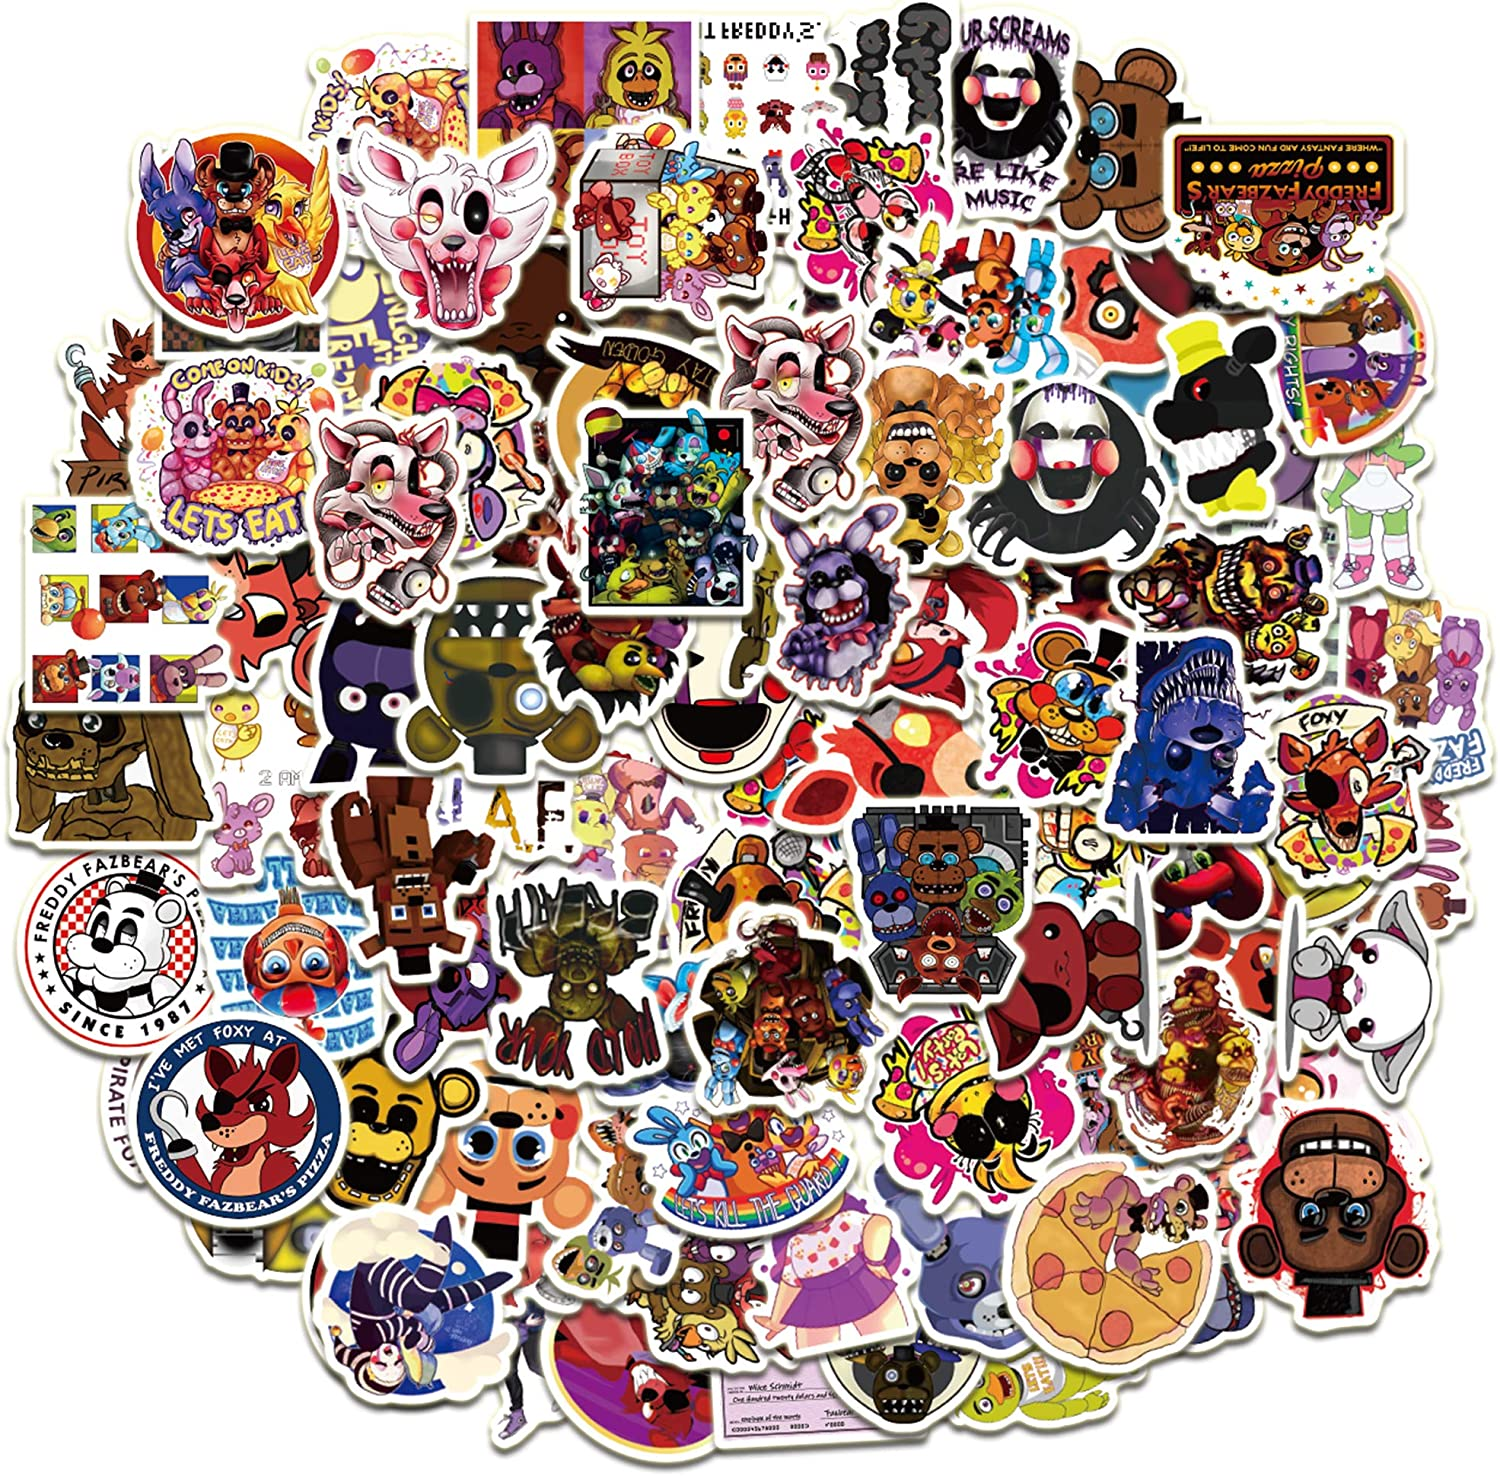 Five Nights at Fred_dy's Stickers 101PCS Cartoon Gaming Action Figures Art Work for Laptop Bumper Computer Scrapbook Pencil Case Boys FN_AF Decorations Gifts